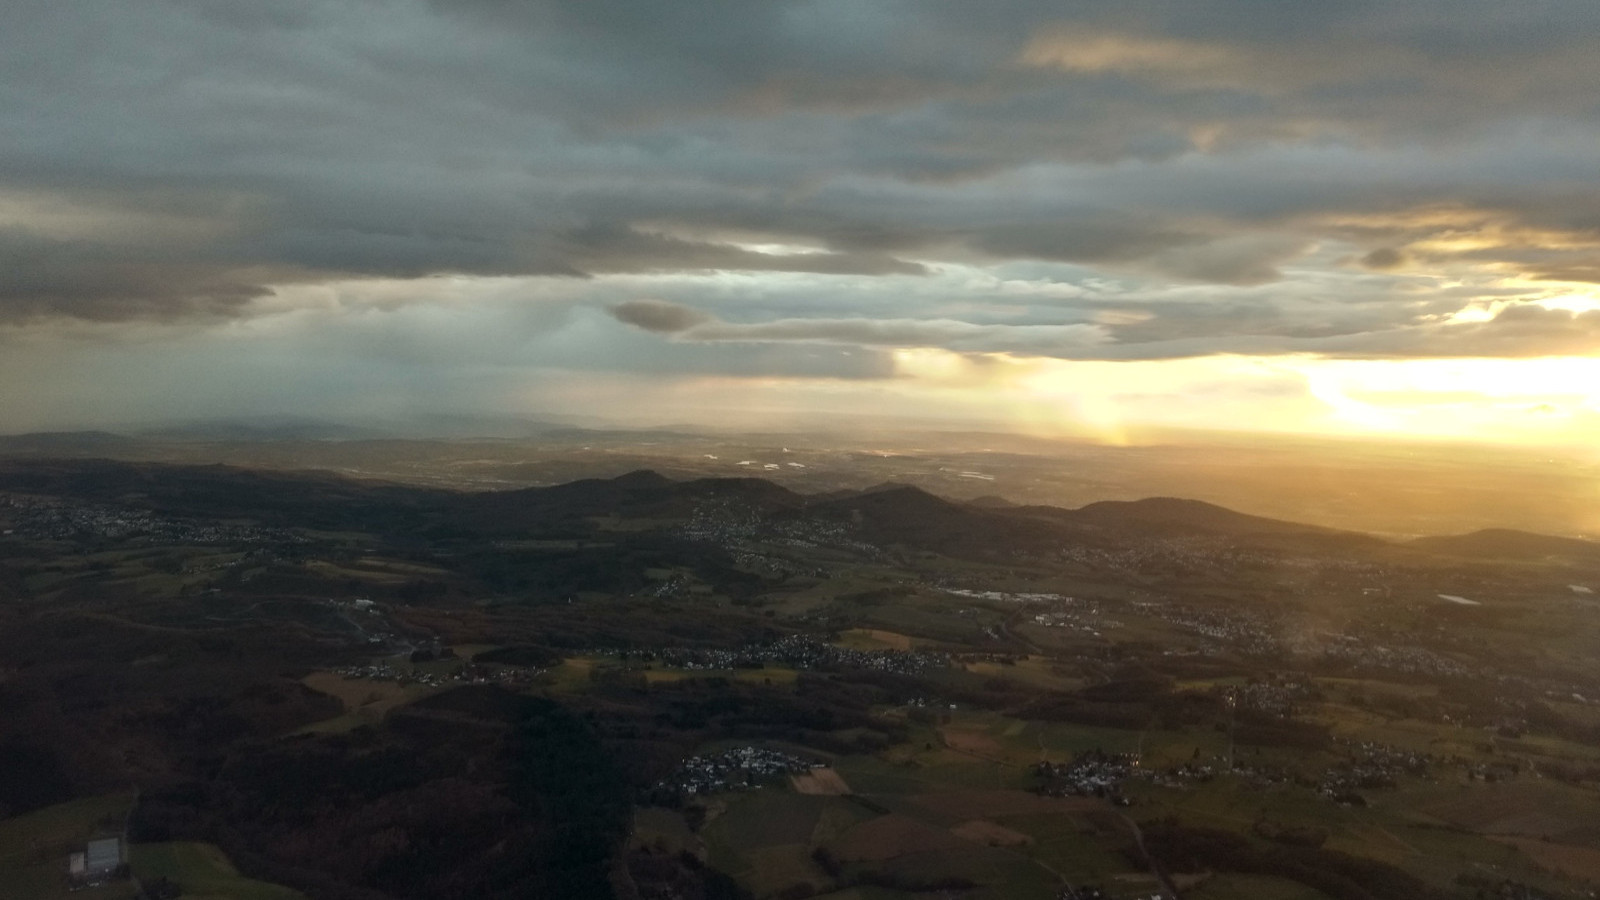 Dusk over Dublin out of an airplane